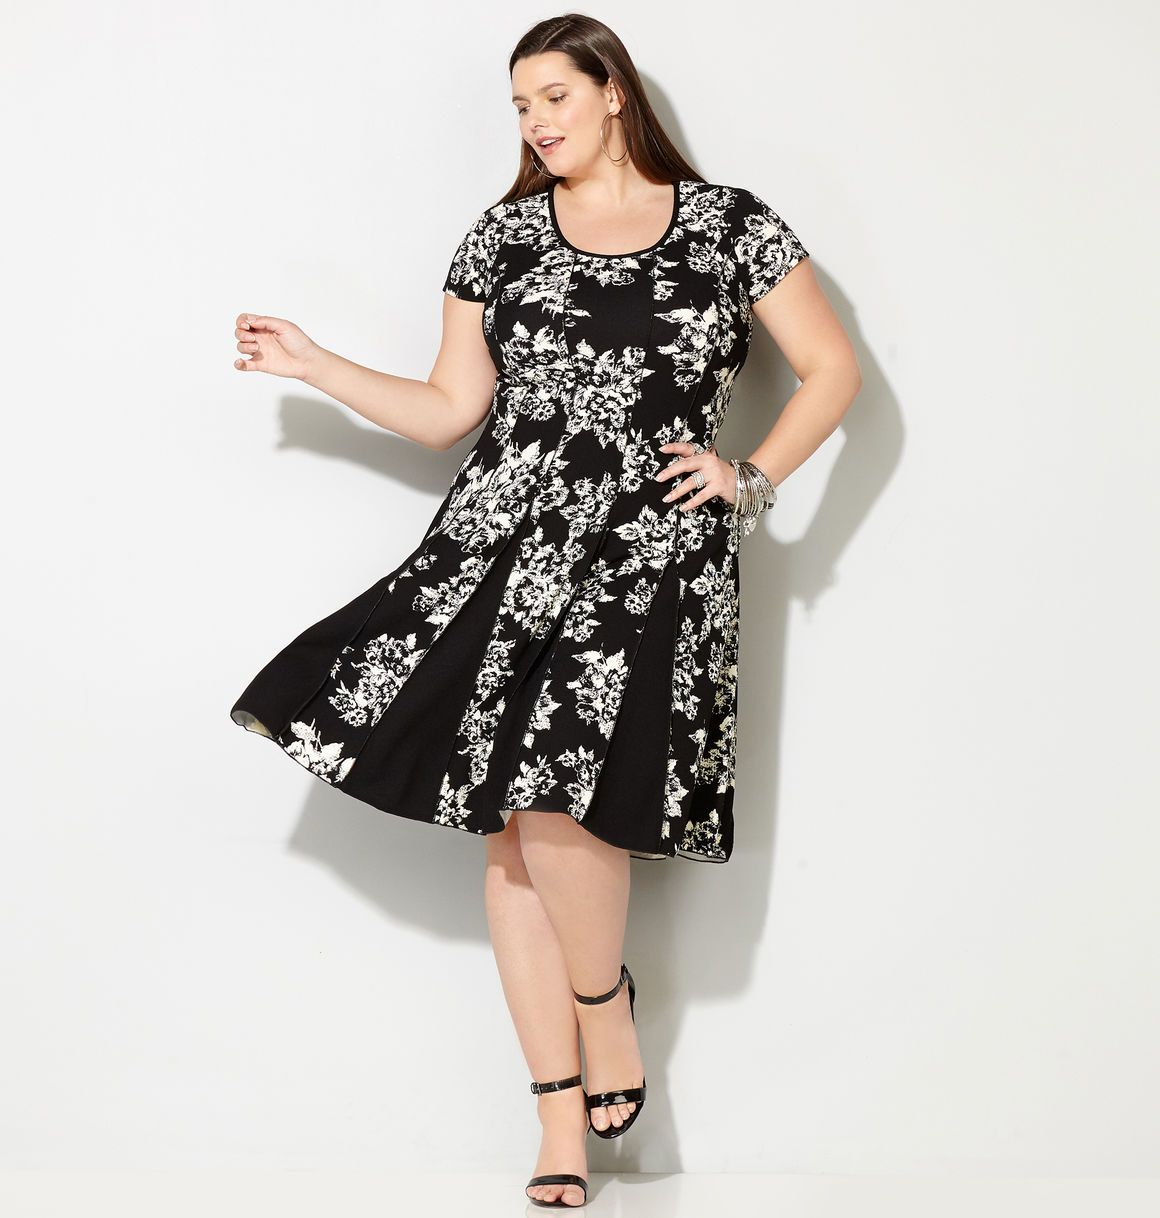 9b9fdf2741 Shop flattering plus size dresses in sizes 14-32 like the Contrast Floral  Seamed Fit and Flare Dress available online at avenue.com. Avenue Store